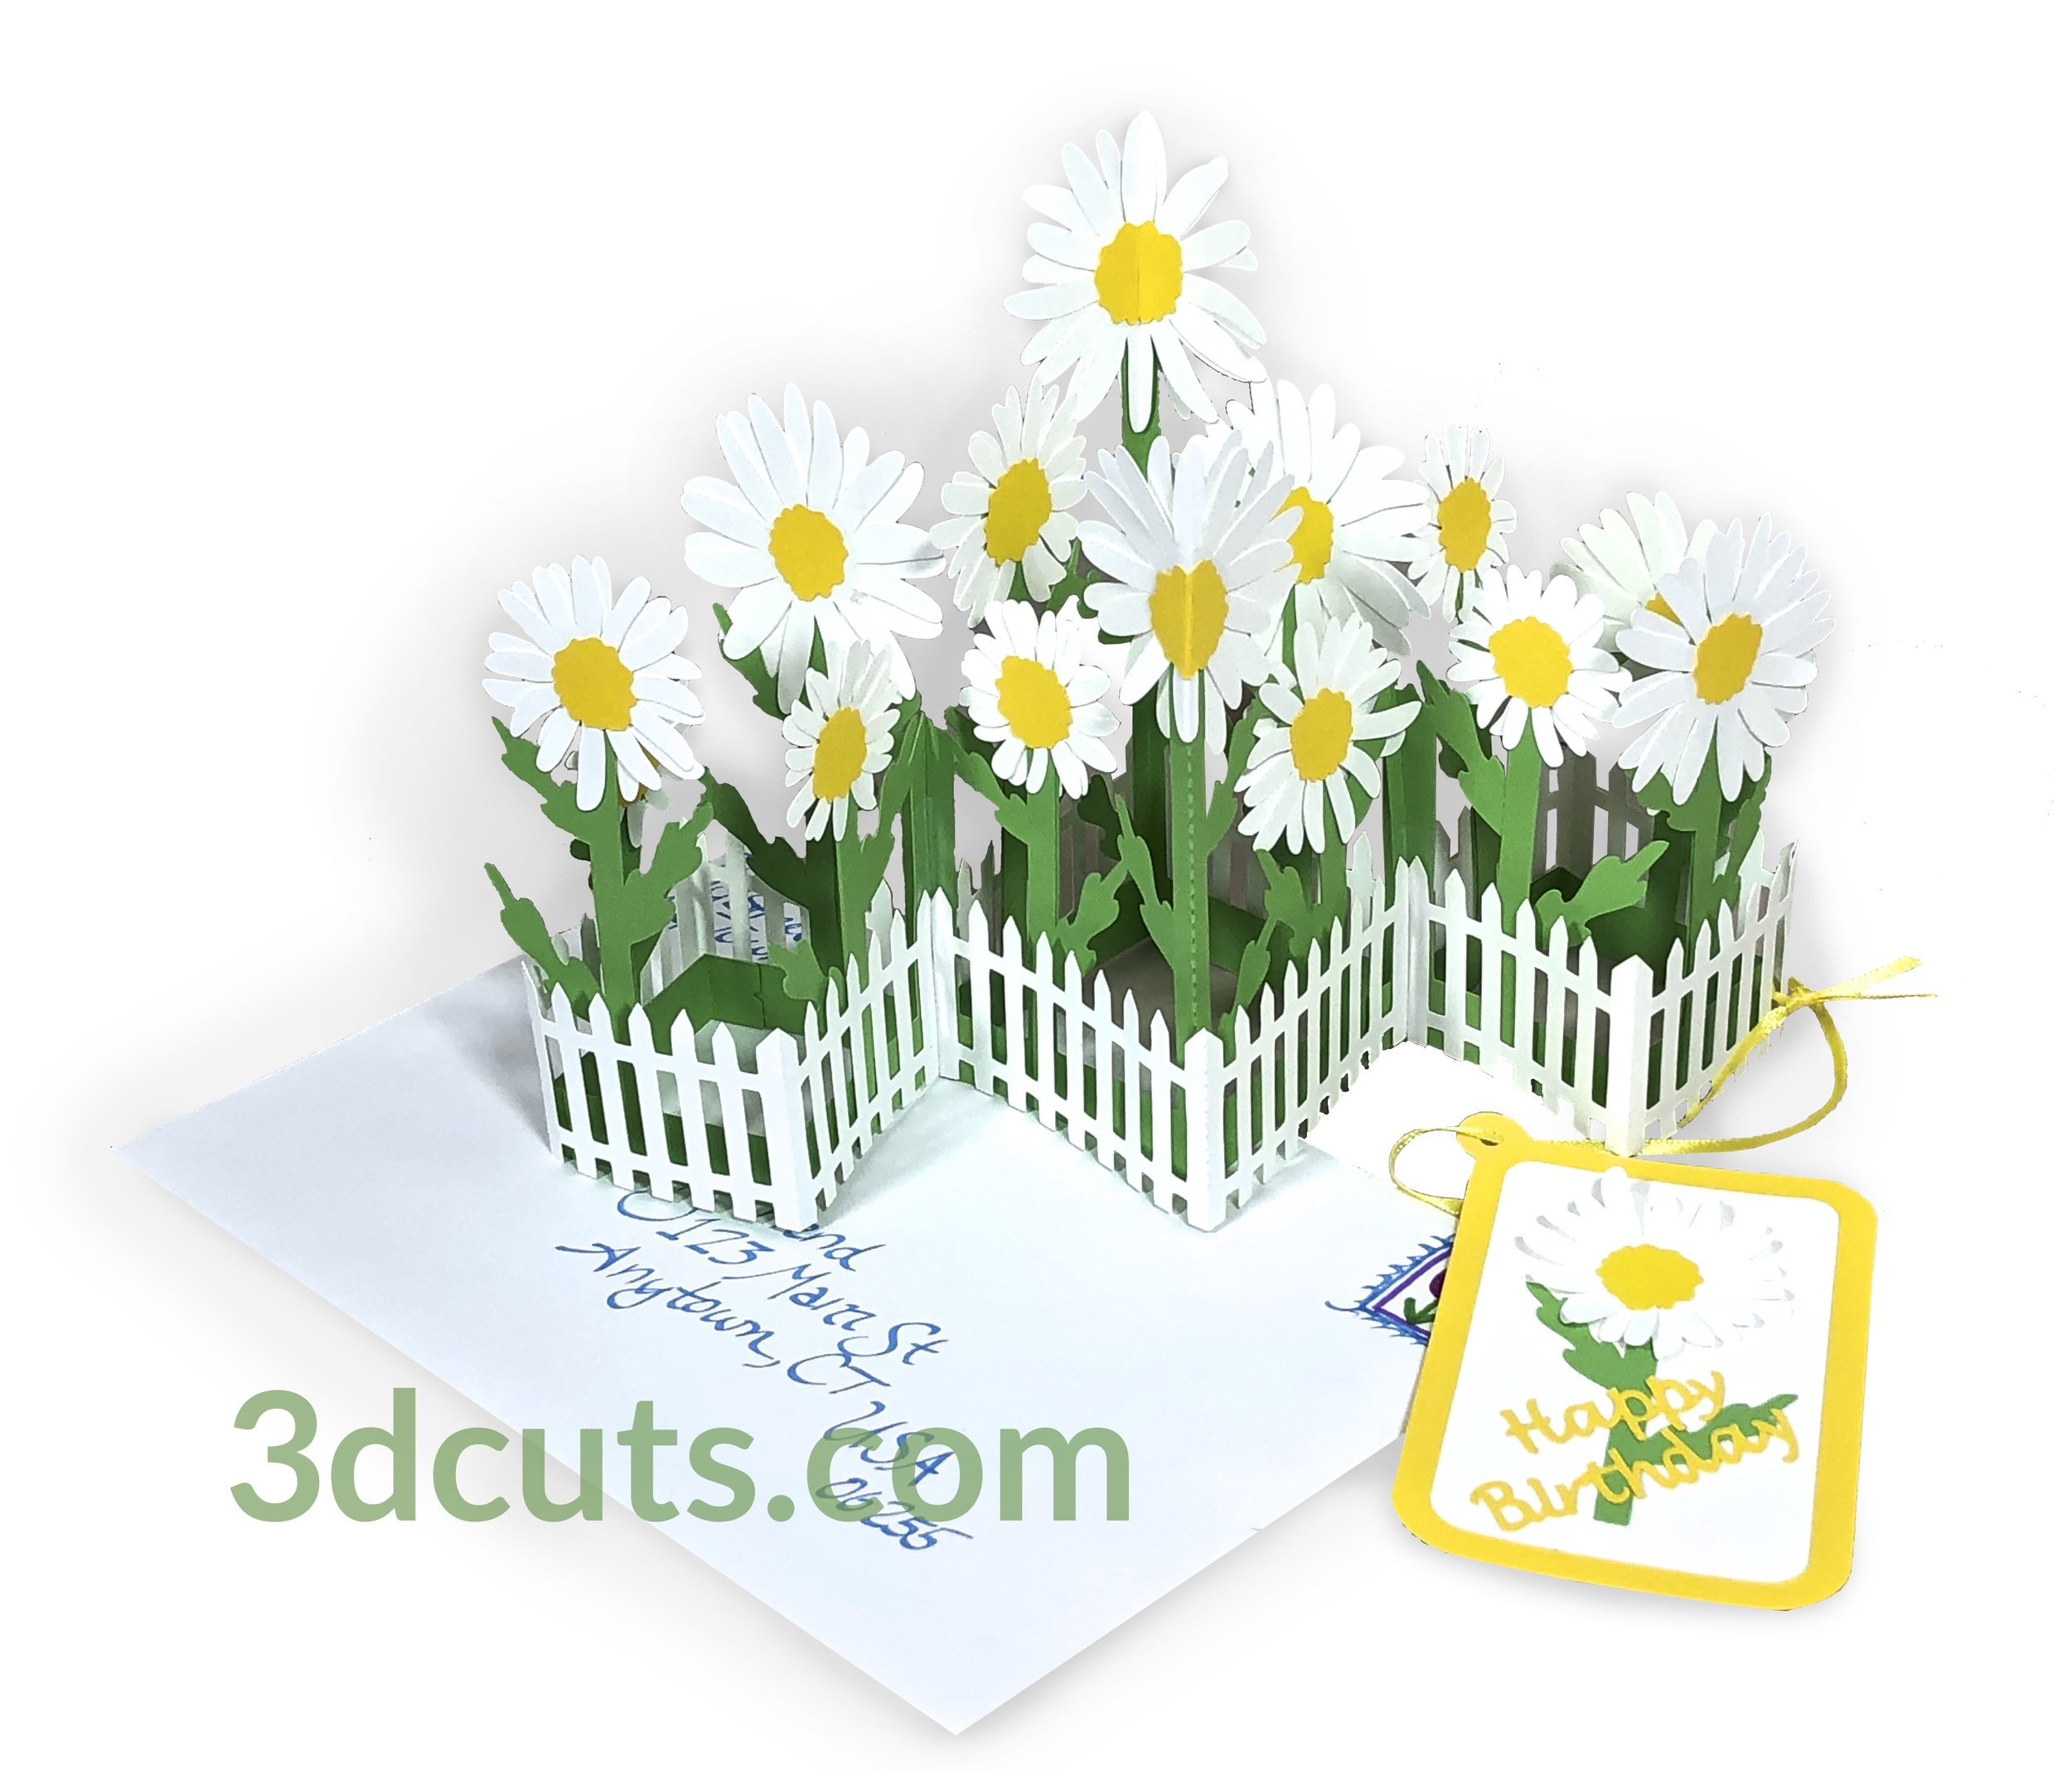 Zig Zag Daisy Card for Easter, Spring or Mother's Day, 3DCuts.com, Marji Roy, 3D cutting files in .svg, .dxf, and .pdf formats for use with Silhouette, Cricut and other cutting machines, paper crafting files